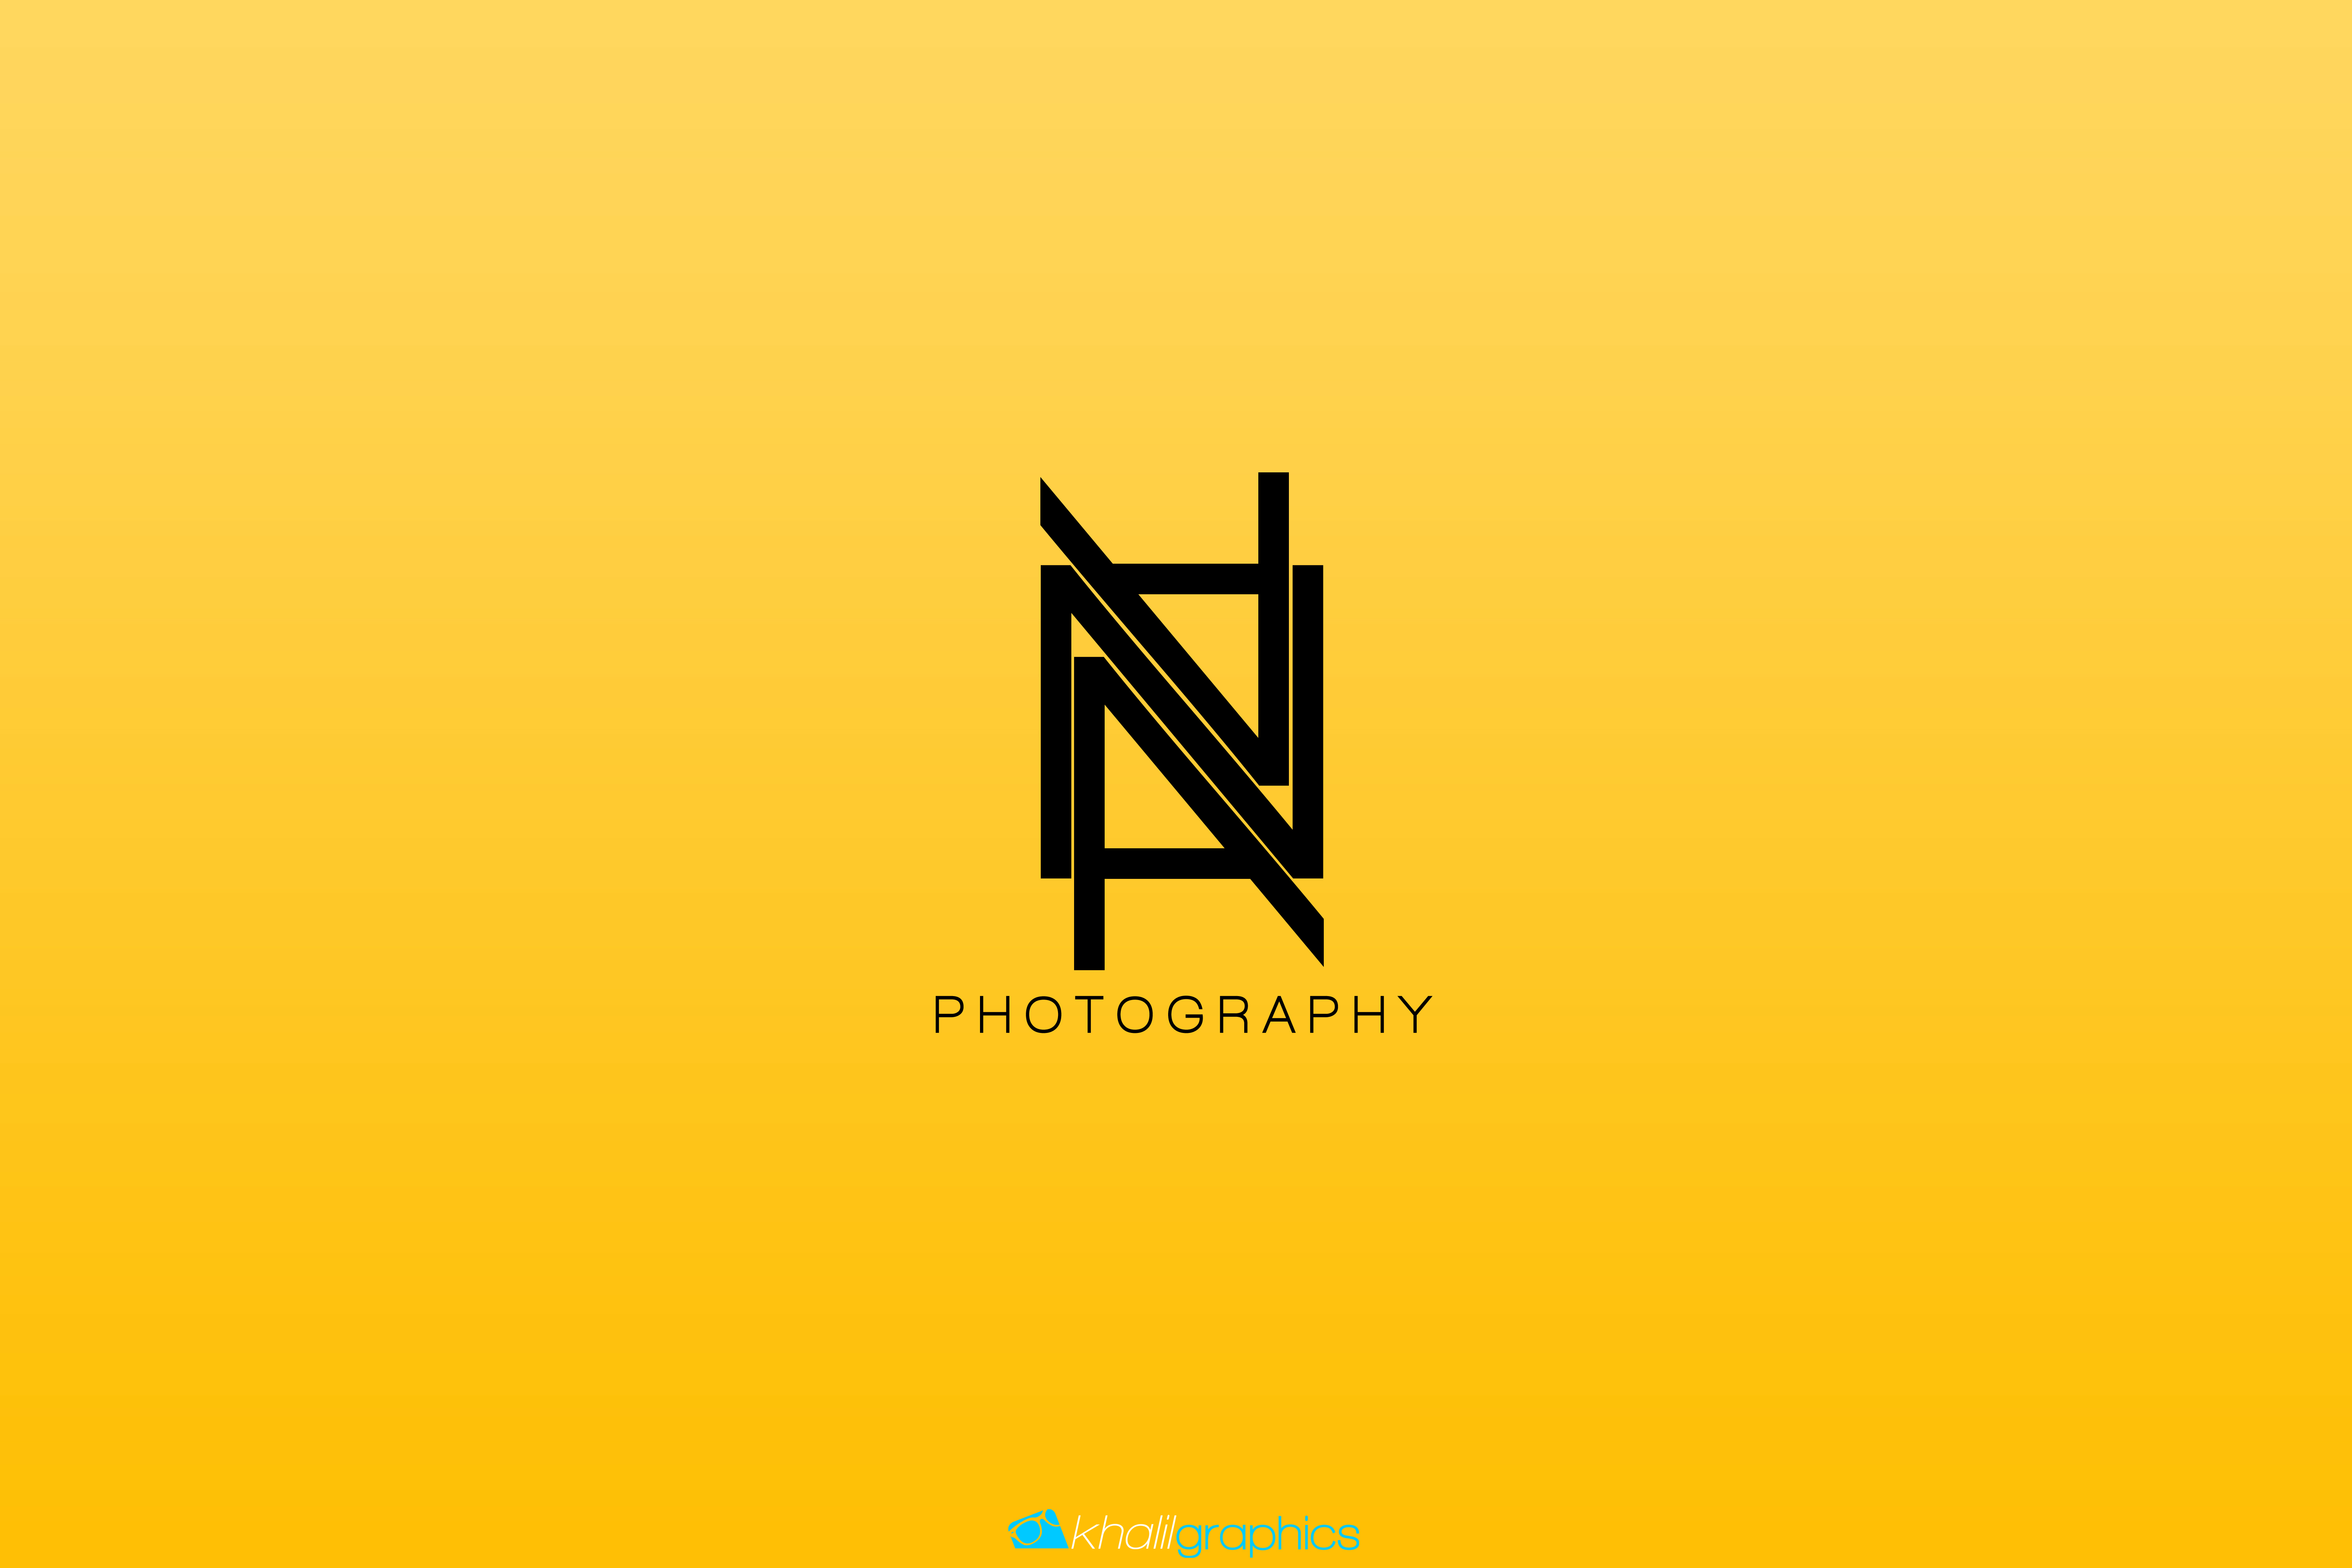 a n a photography logo by khaalil on deviantart